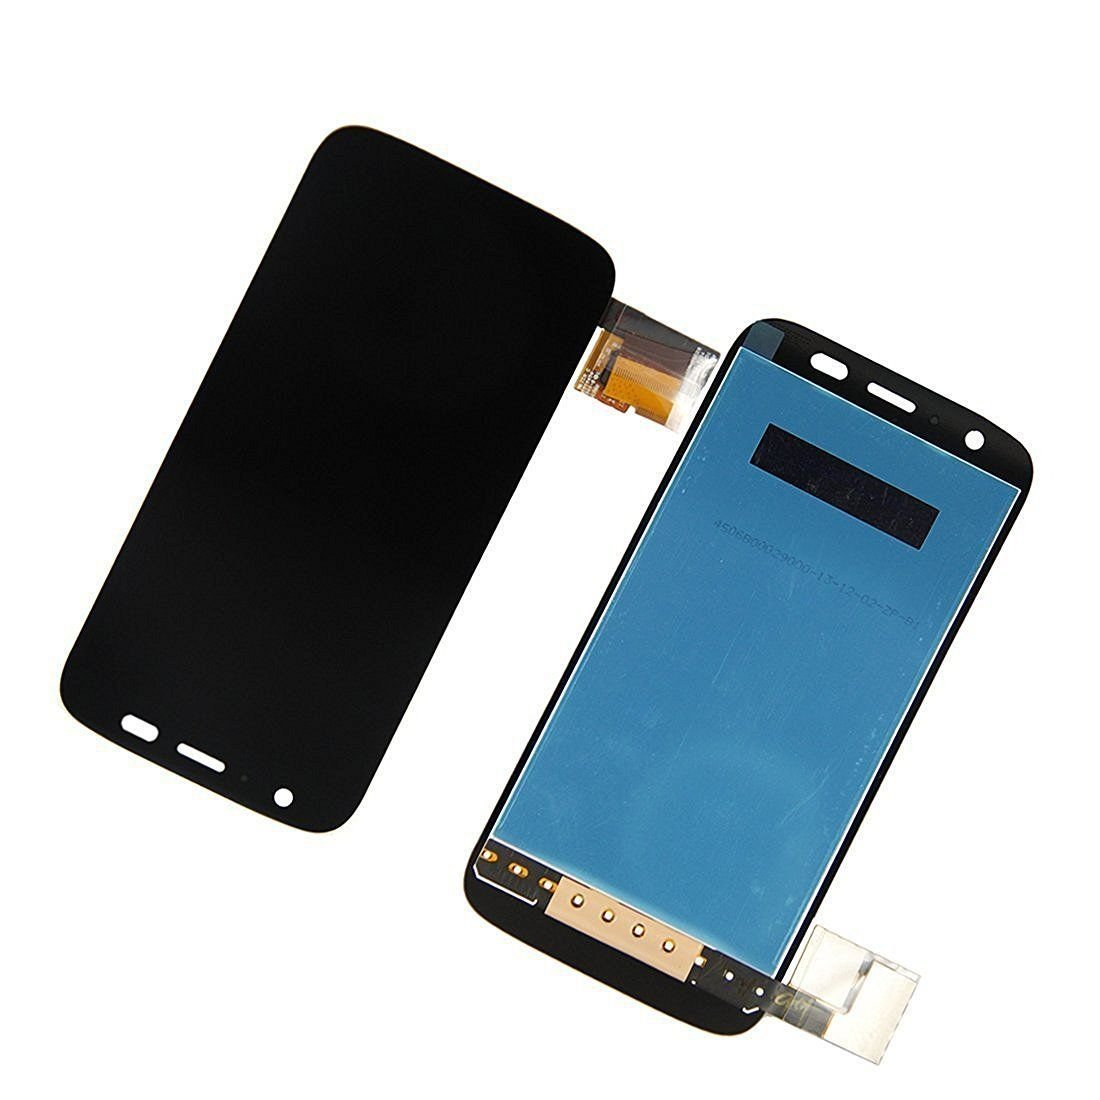 USA Front Assembly LCD Display Touch Screen Digitizer for Motorola Moto G XT1032